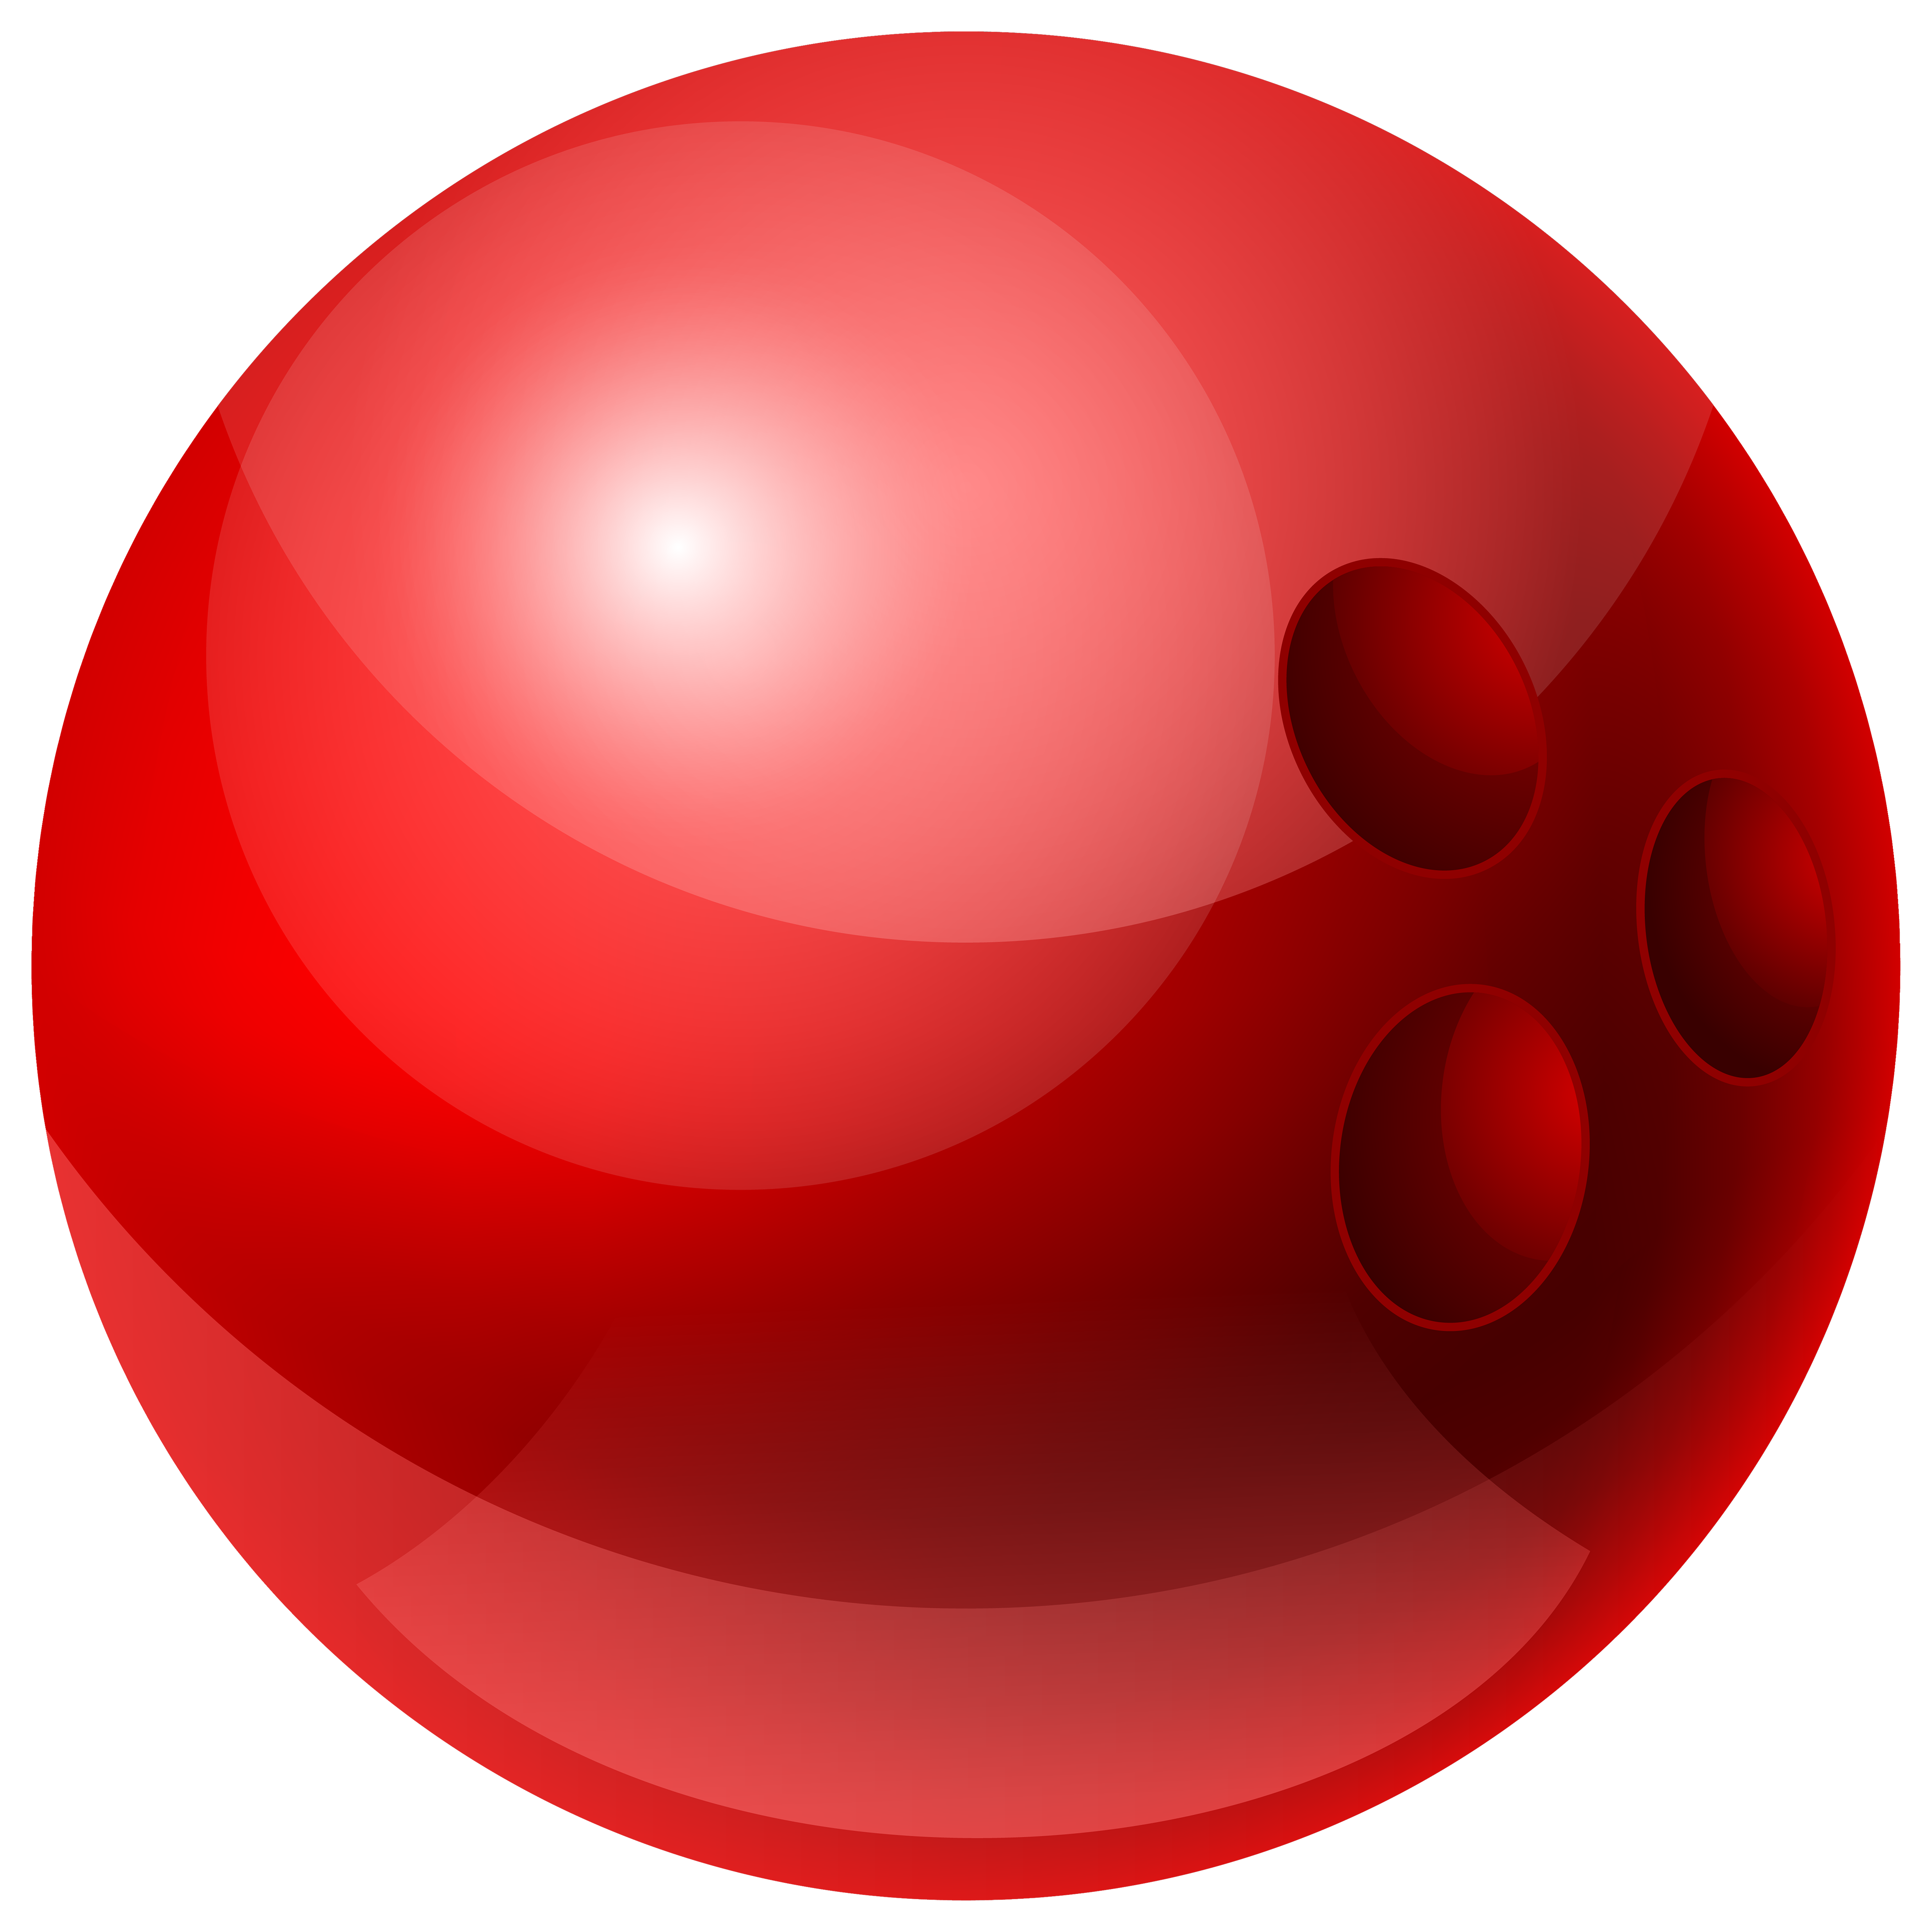 Bowls of marbles clipart transparent library Red Bowling Ball PNG Clipart - Best WEB Clipart transparent library